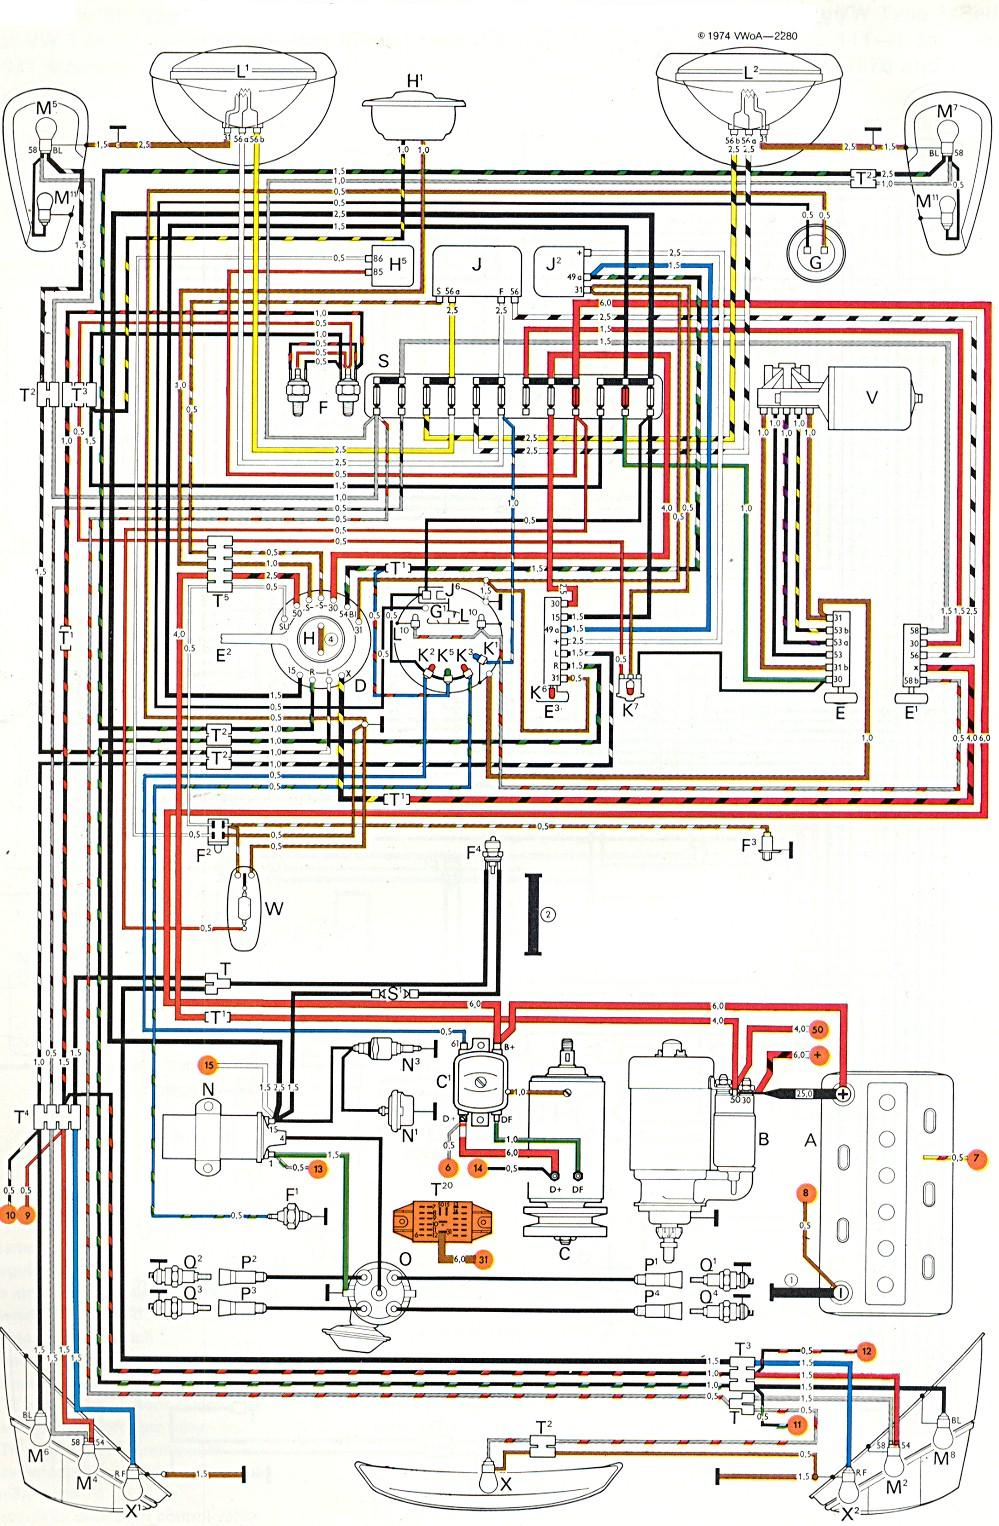 1970 Vw Beetle Tail Light Wiring Diagram : Super beetle engine diagram get free image about